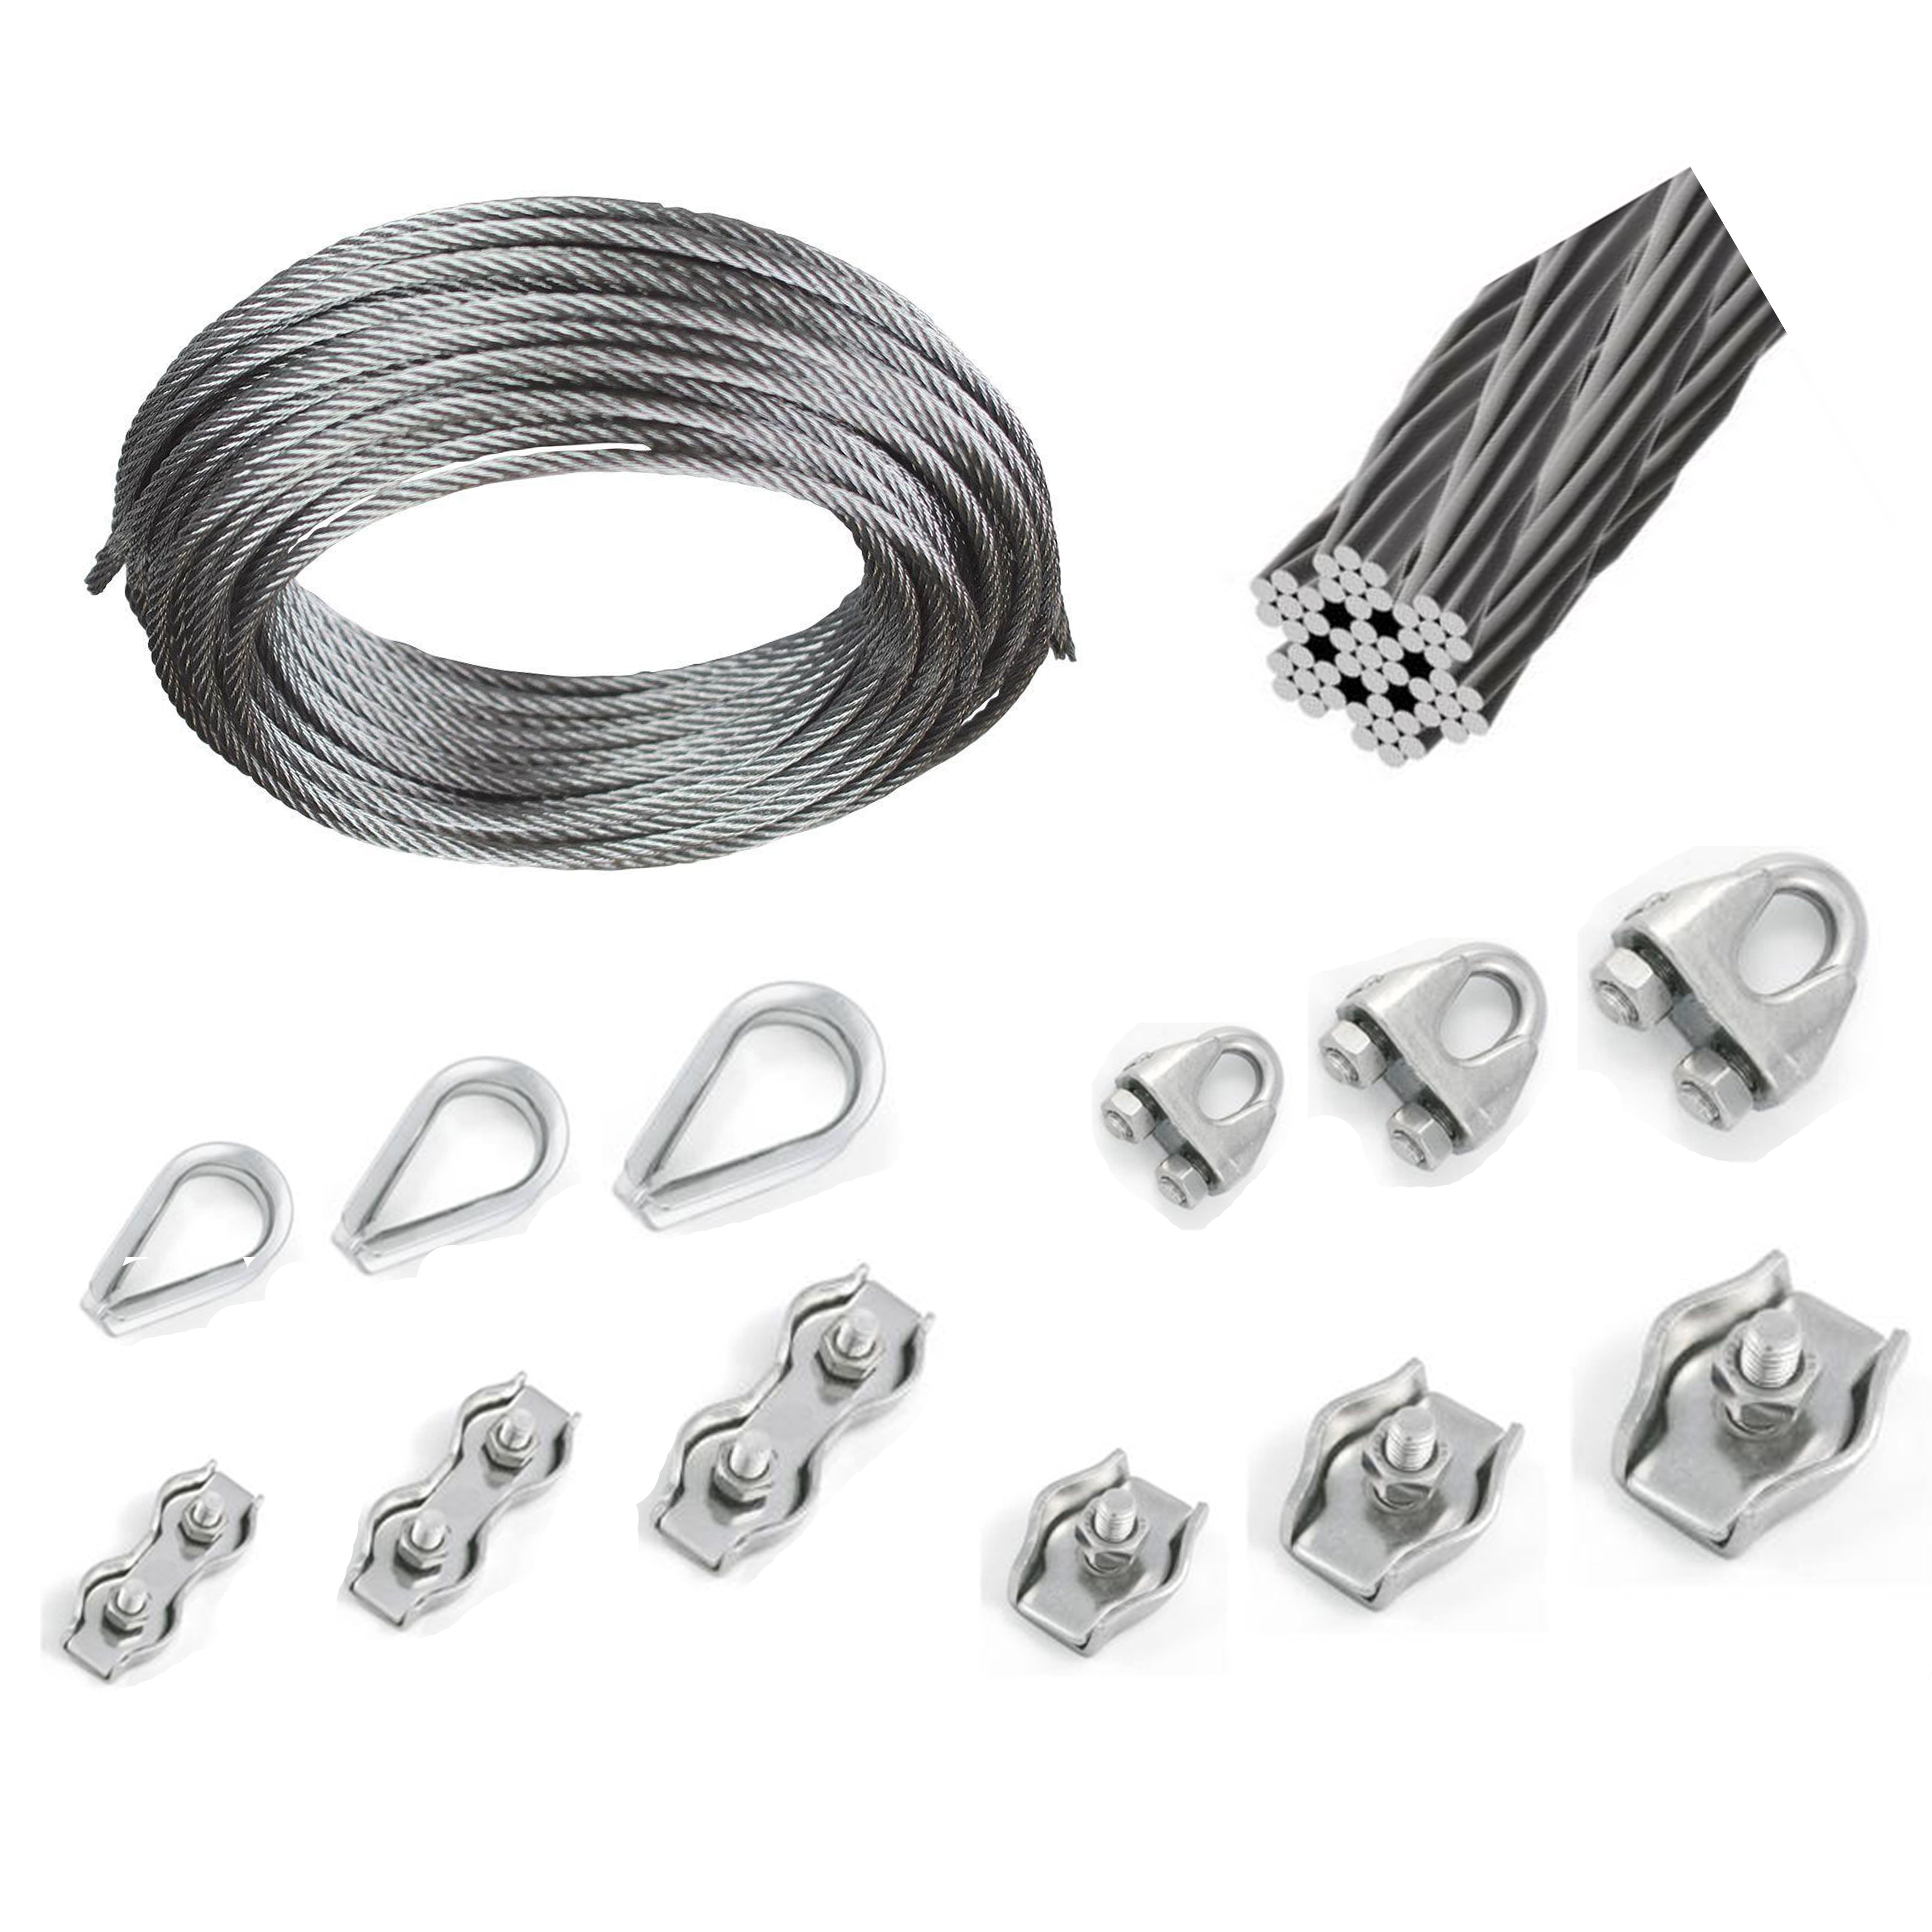 Nylon Line Plastic Thimble Eyes Replacements For 16mm Wires Ropes